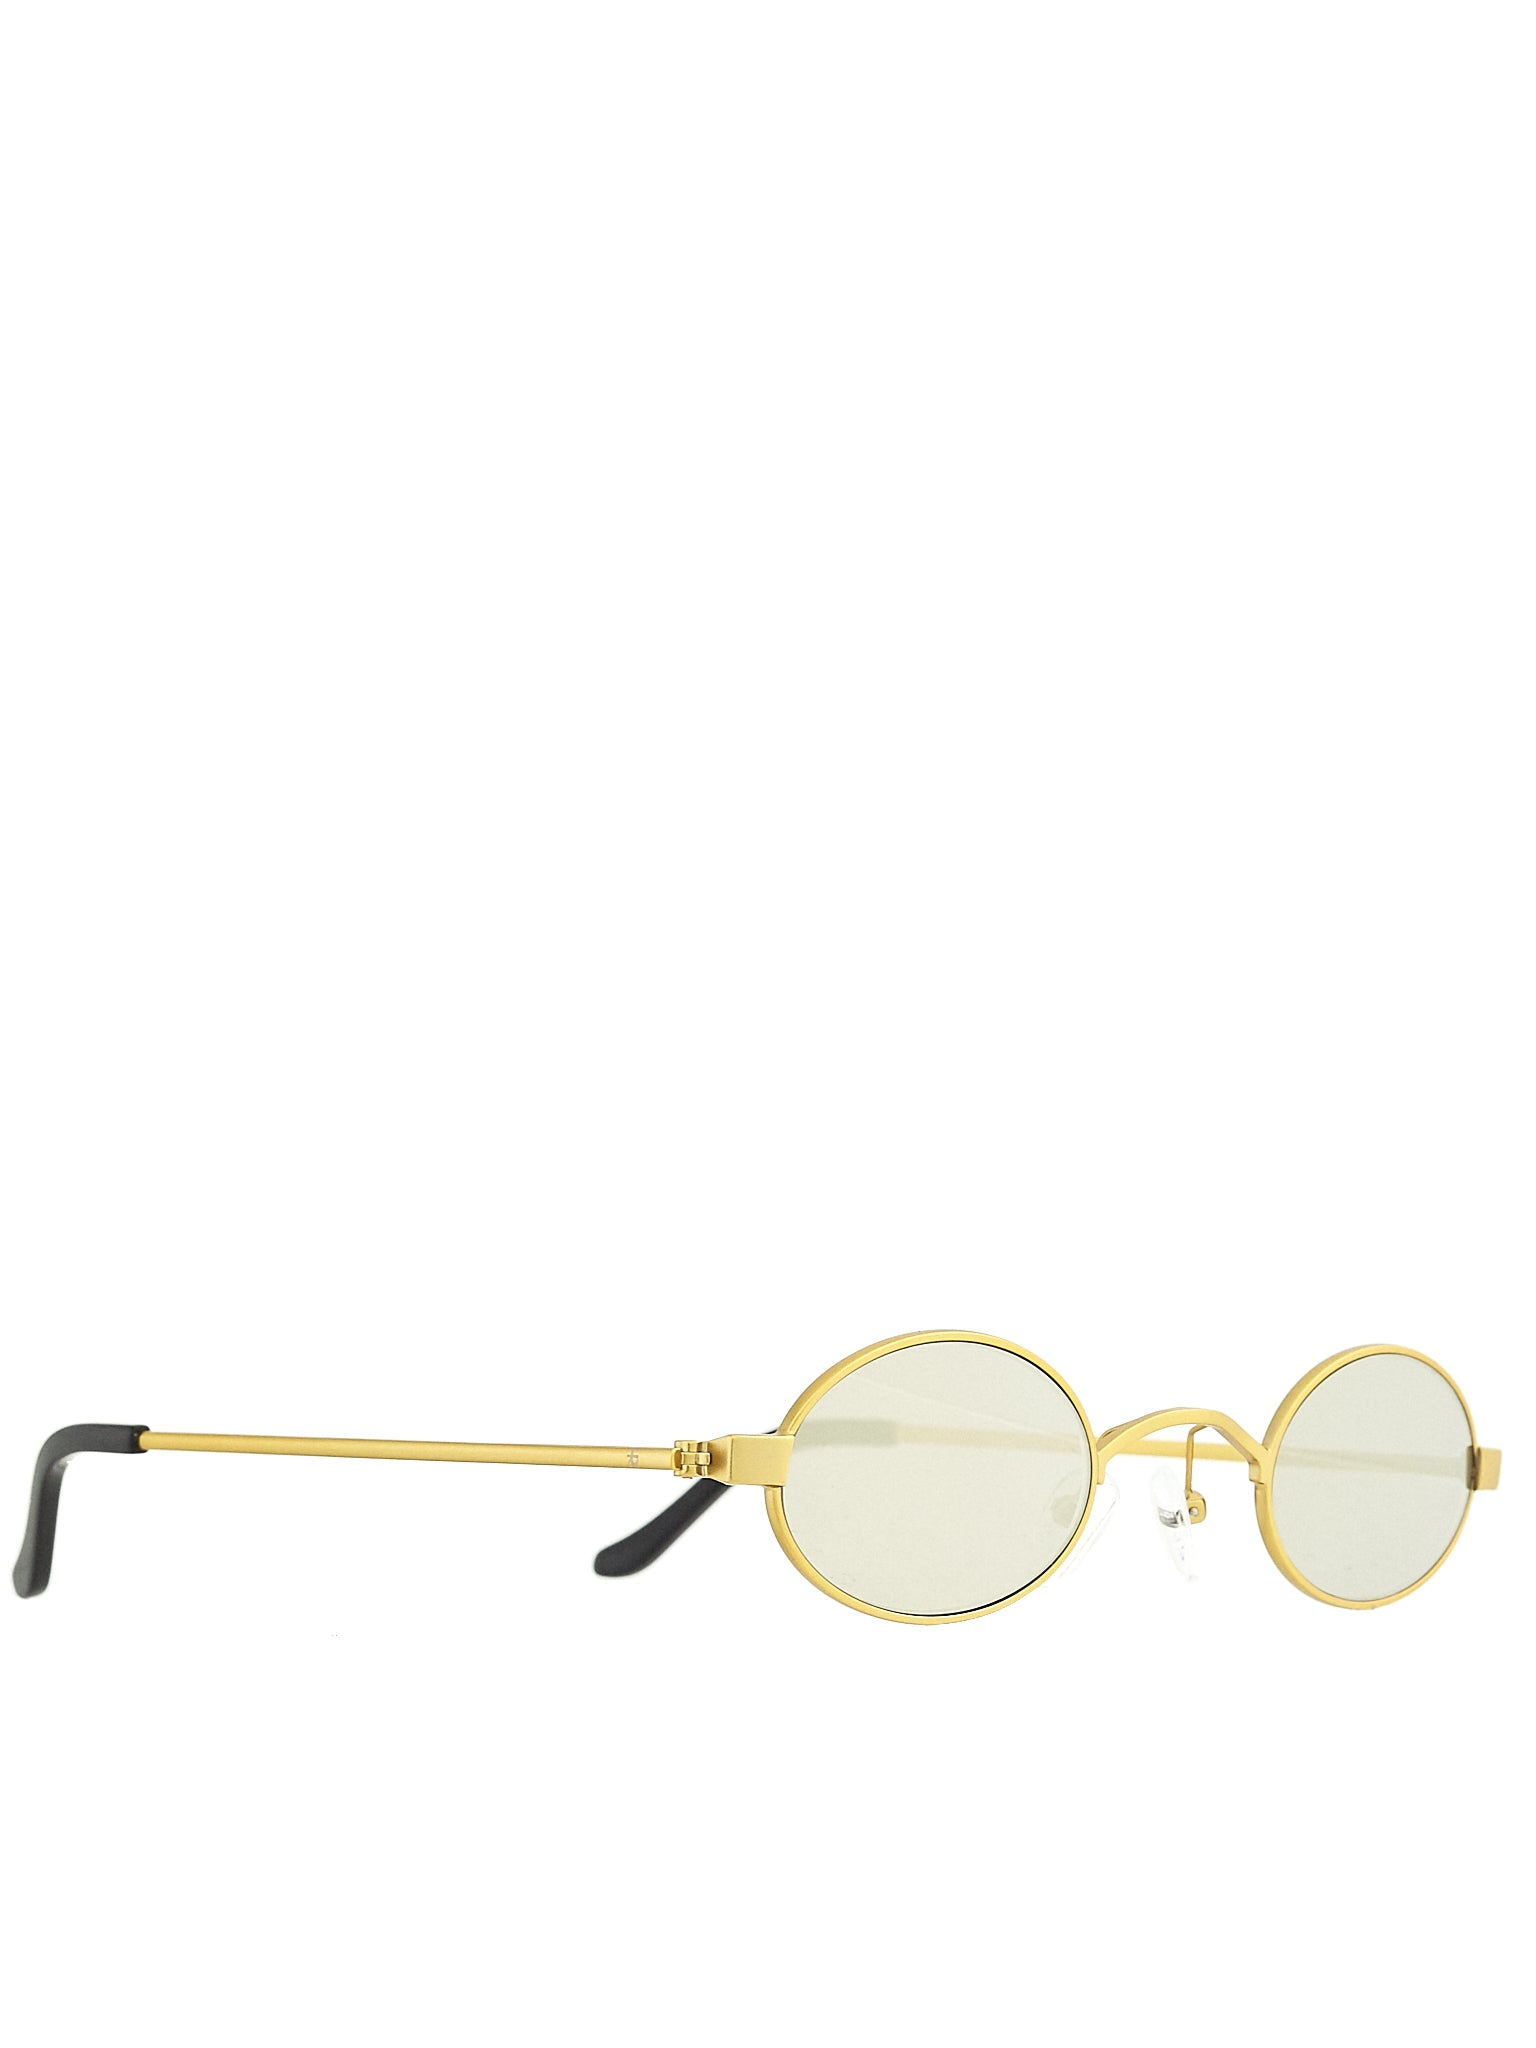 Roberi & Fraud Gold Sunglasses - Hlorenzo Side